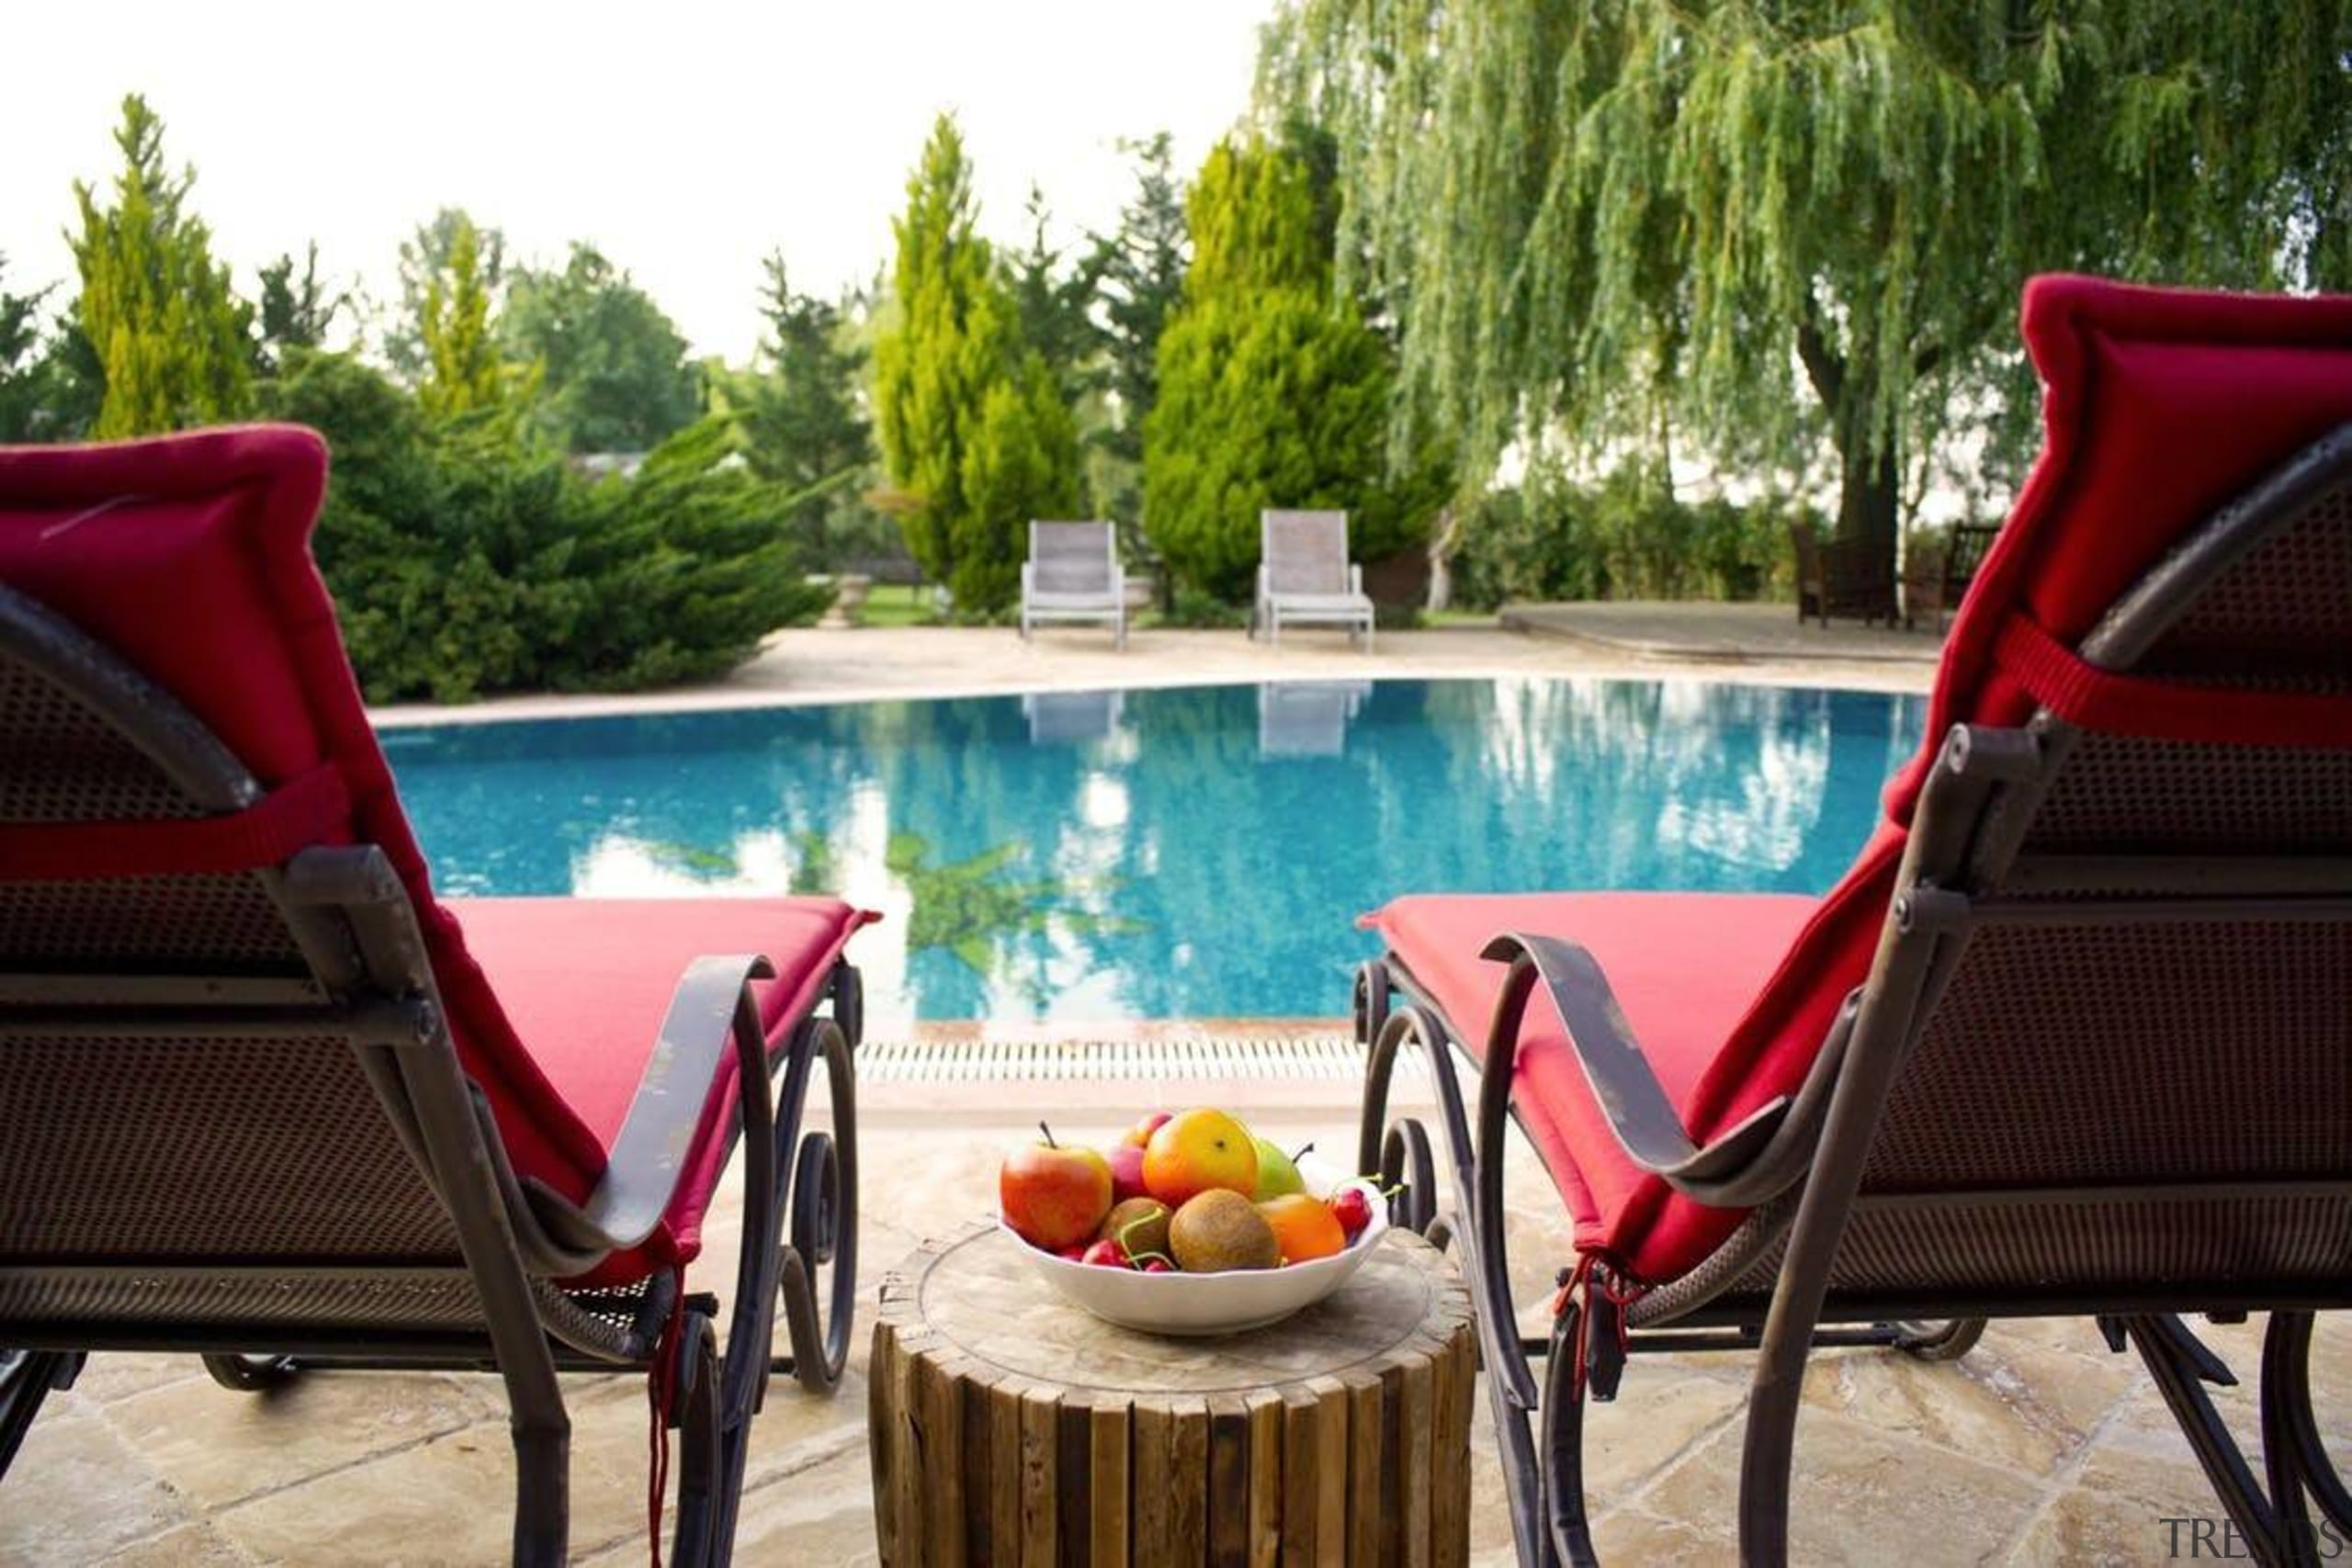 Is there a better outdoor gathering spot? - backyard, chair, estate, furniture, home, leisure, outdoor furniture, outdoor structure, patio, property, real estate, resort, sunlounger, swimming pool, table, vacation